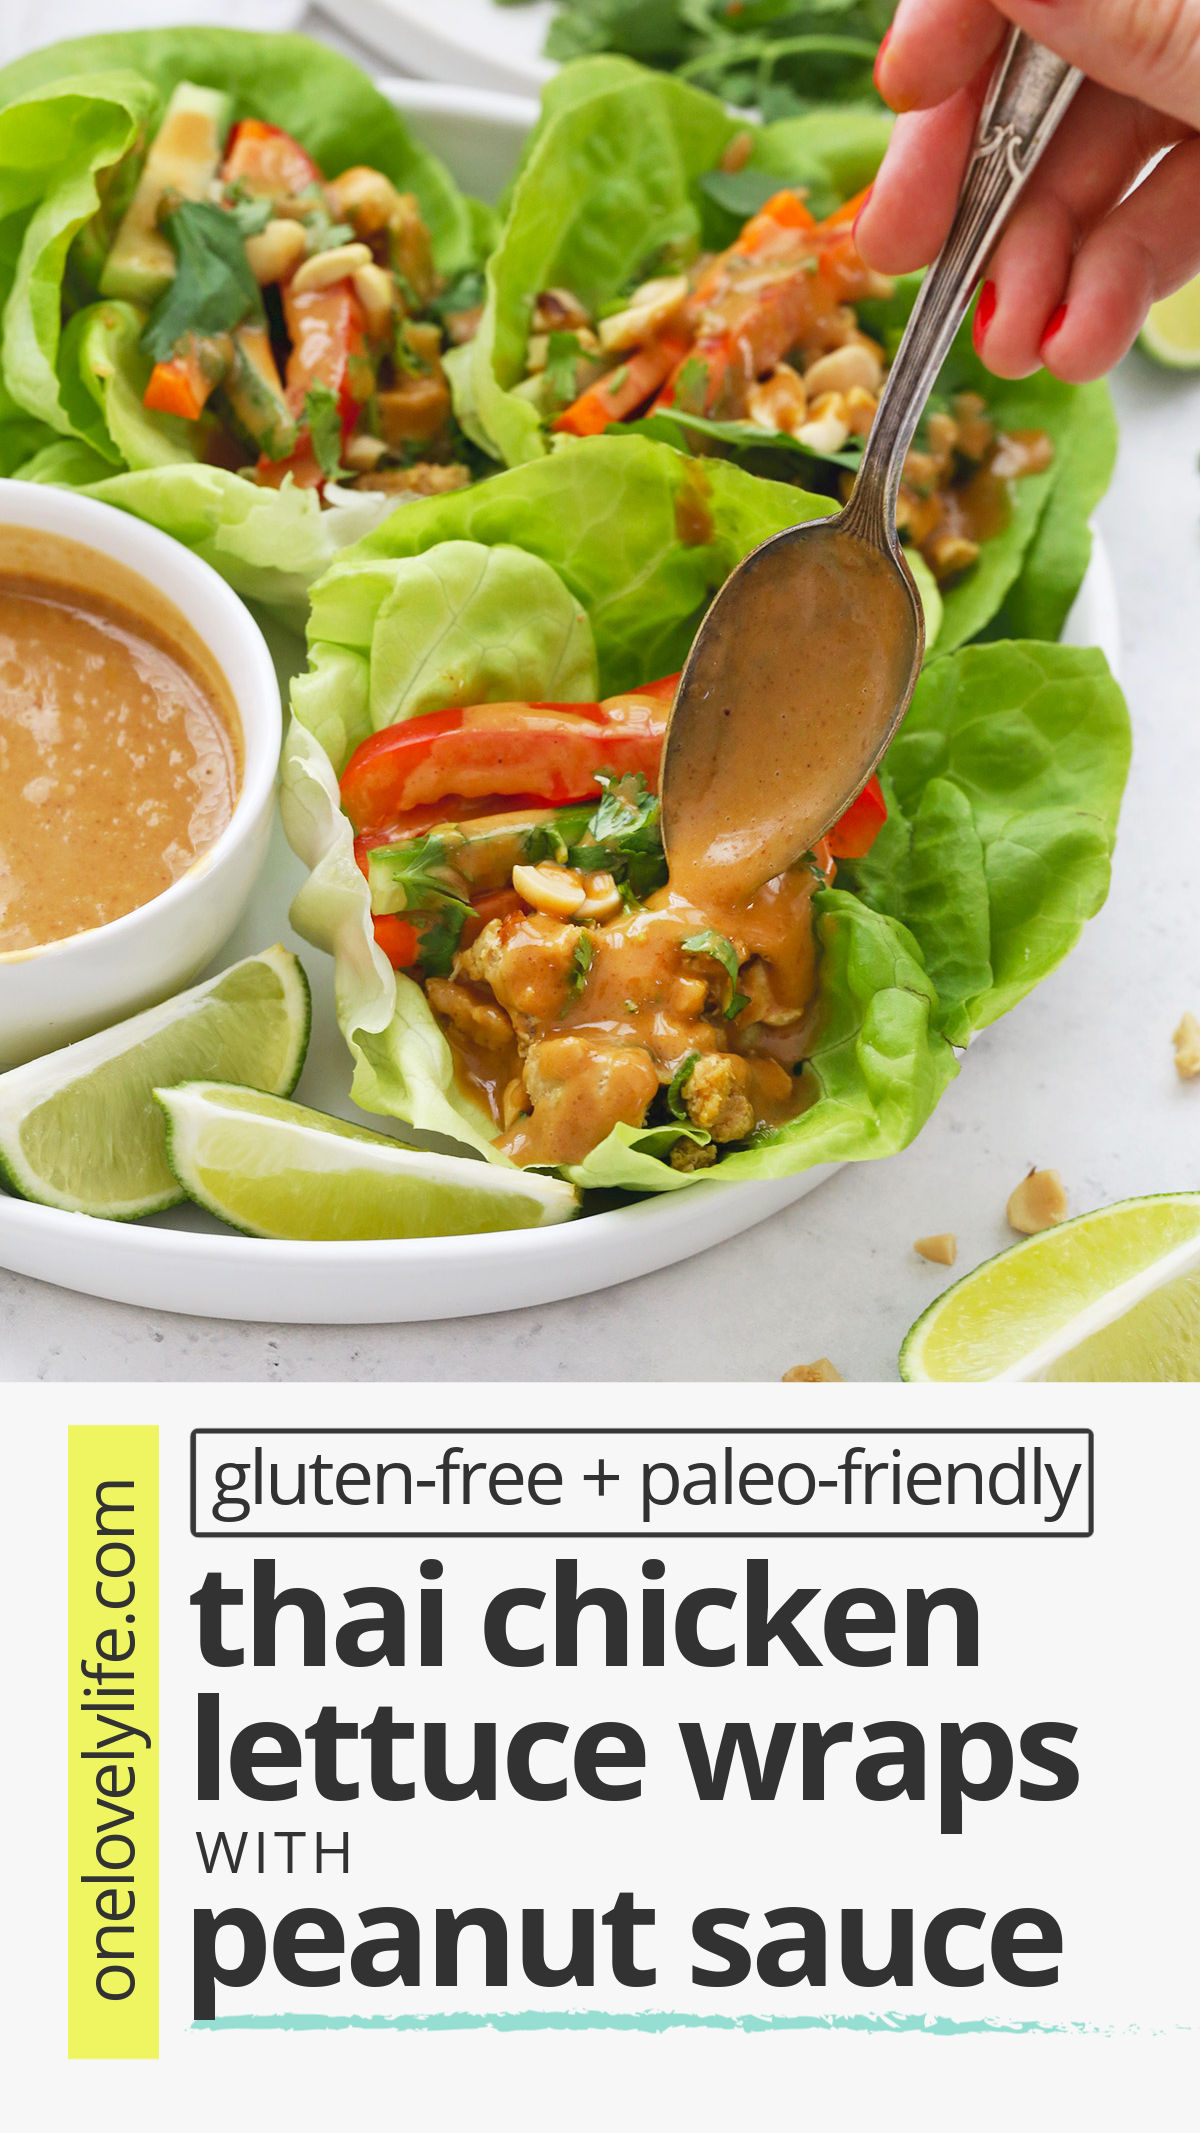 Thai Chicken Lettuce Wraps with Peanut Sauce - These Peanut Chicken Lettuce Wraps use flavorful chicken, crisp, fresh veggies, and THE BEST peanut sauce to make a delicious, easy dinner. // Peanut Lettuce Wraps // Easy dinner // Healthy Dinner #peanutsauce #lettucewraps #chicken #healthydinner #easydinner